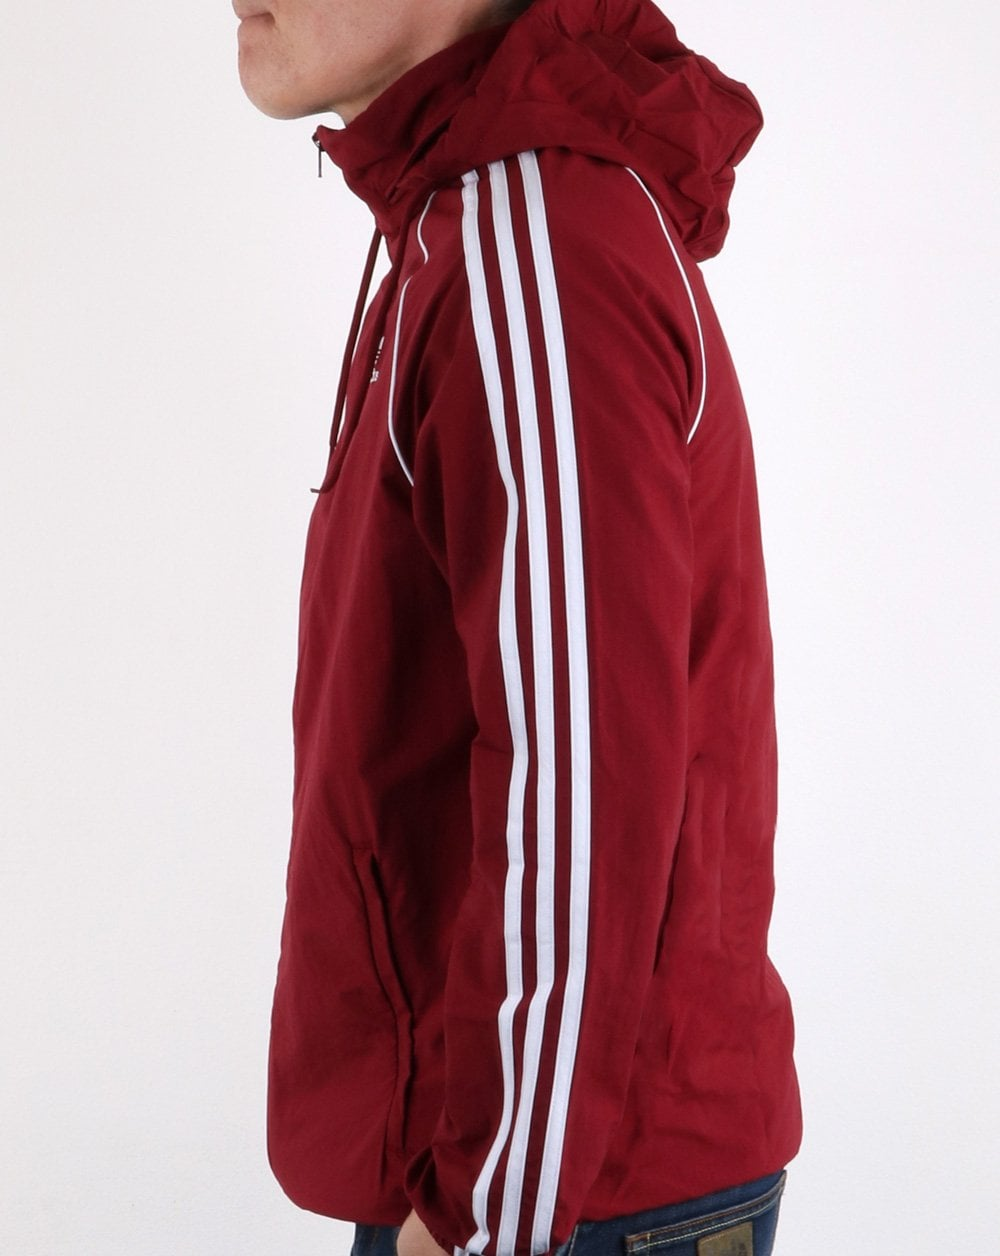 new photos 8c3e0 8bbe3 Adidas Originals Superstar Windbreaker Collegiate Burgundy